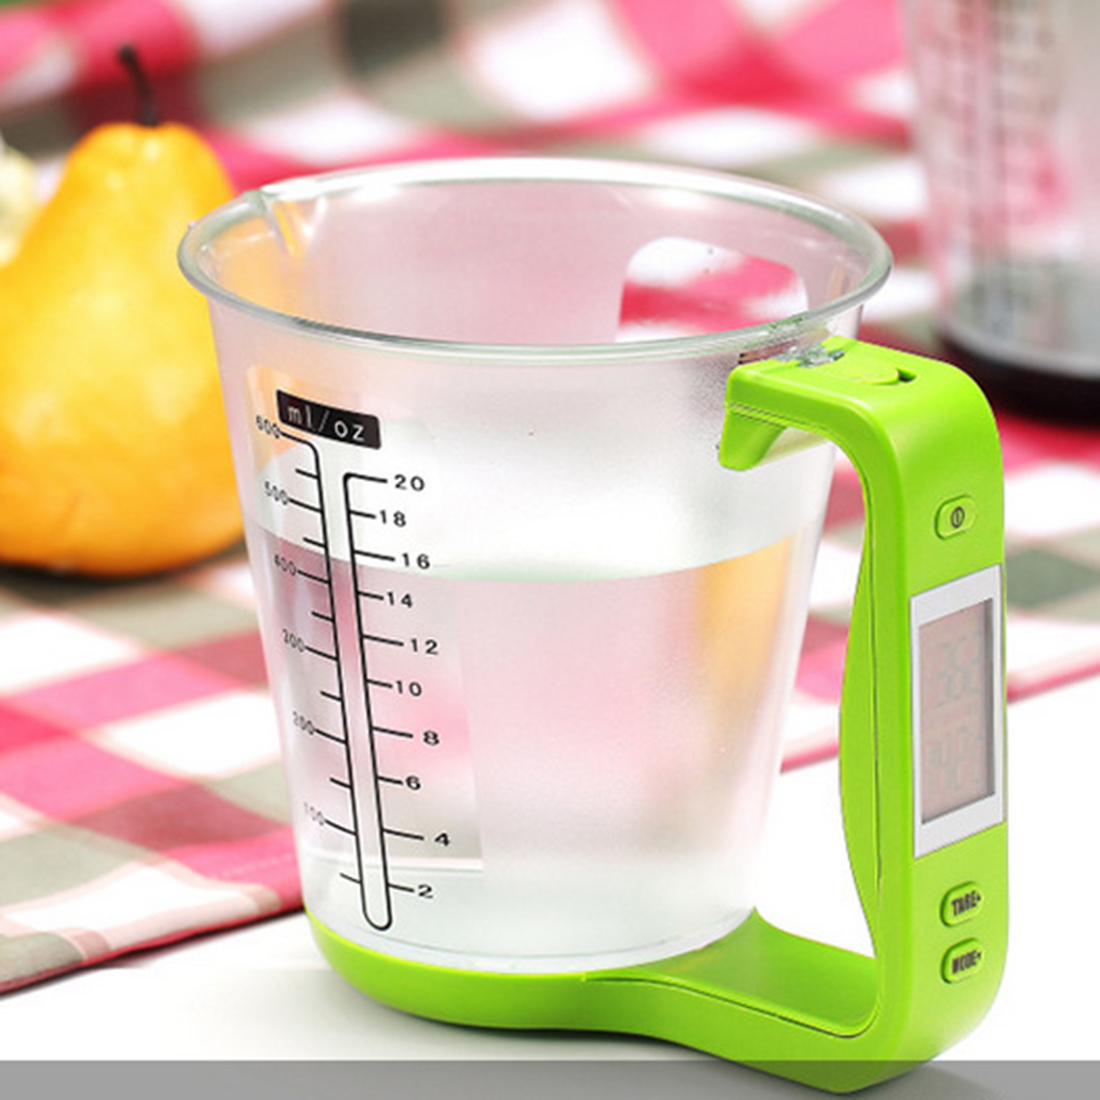 Digital Cup Scale Electronic Kitchen Measuring Cups With LCD Display Liquid Measure Cup Jug Household Scales Kitchen Tools